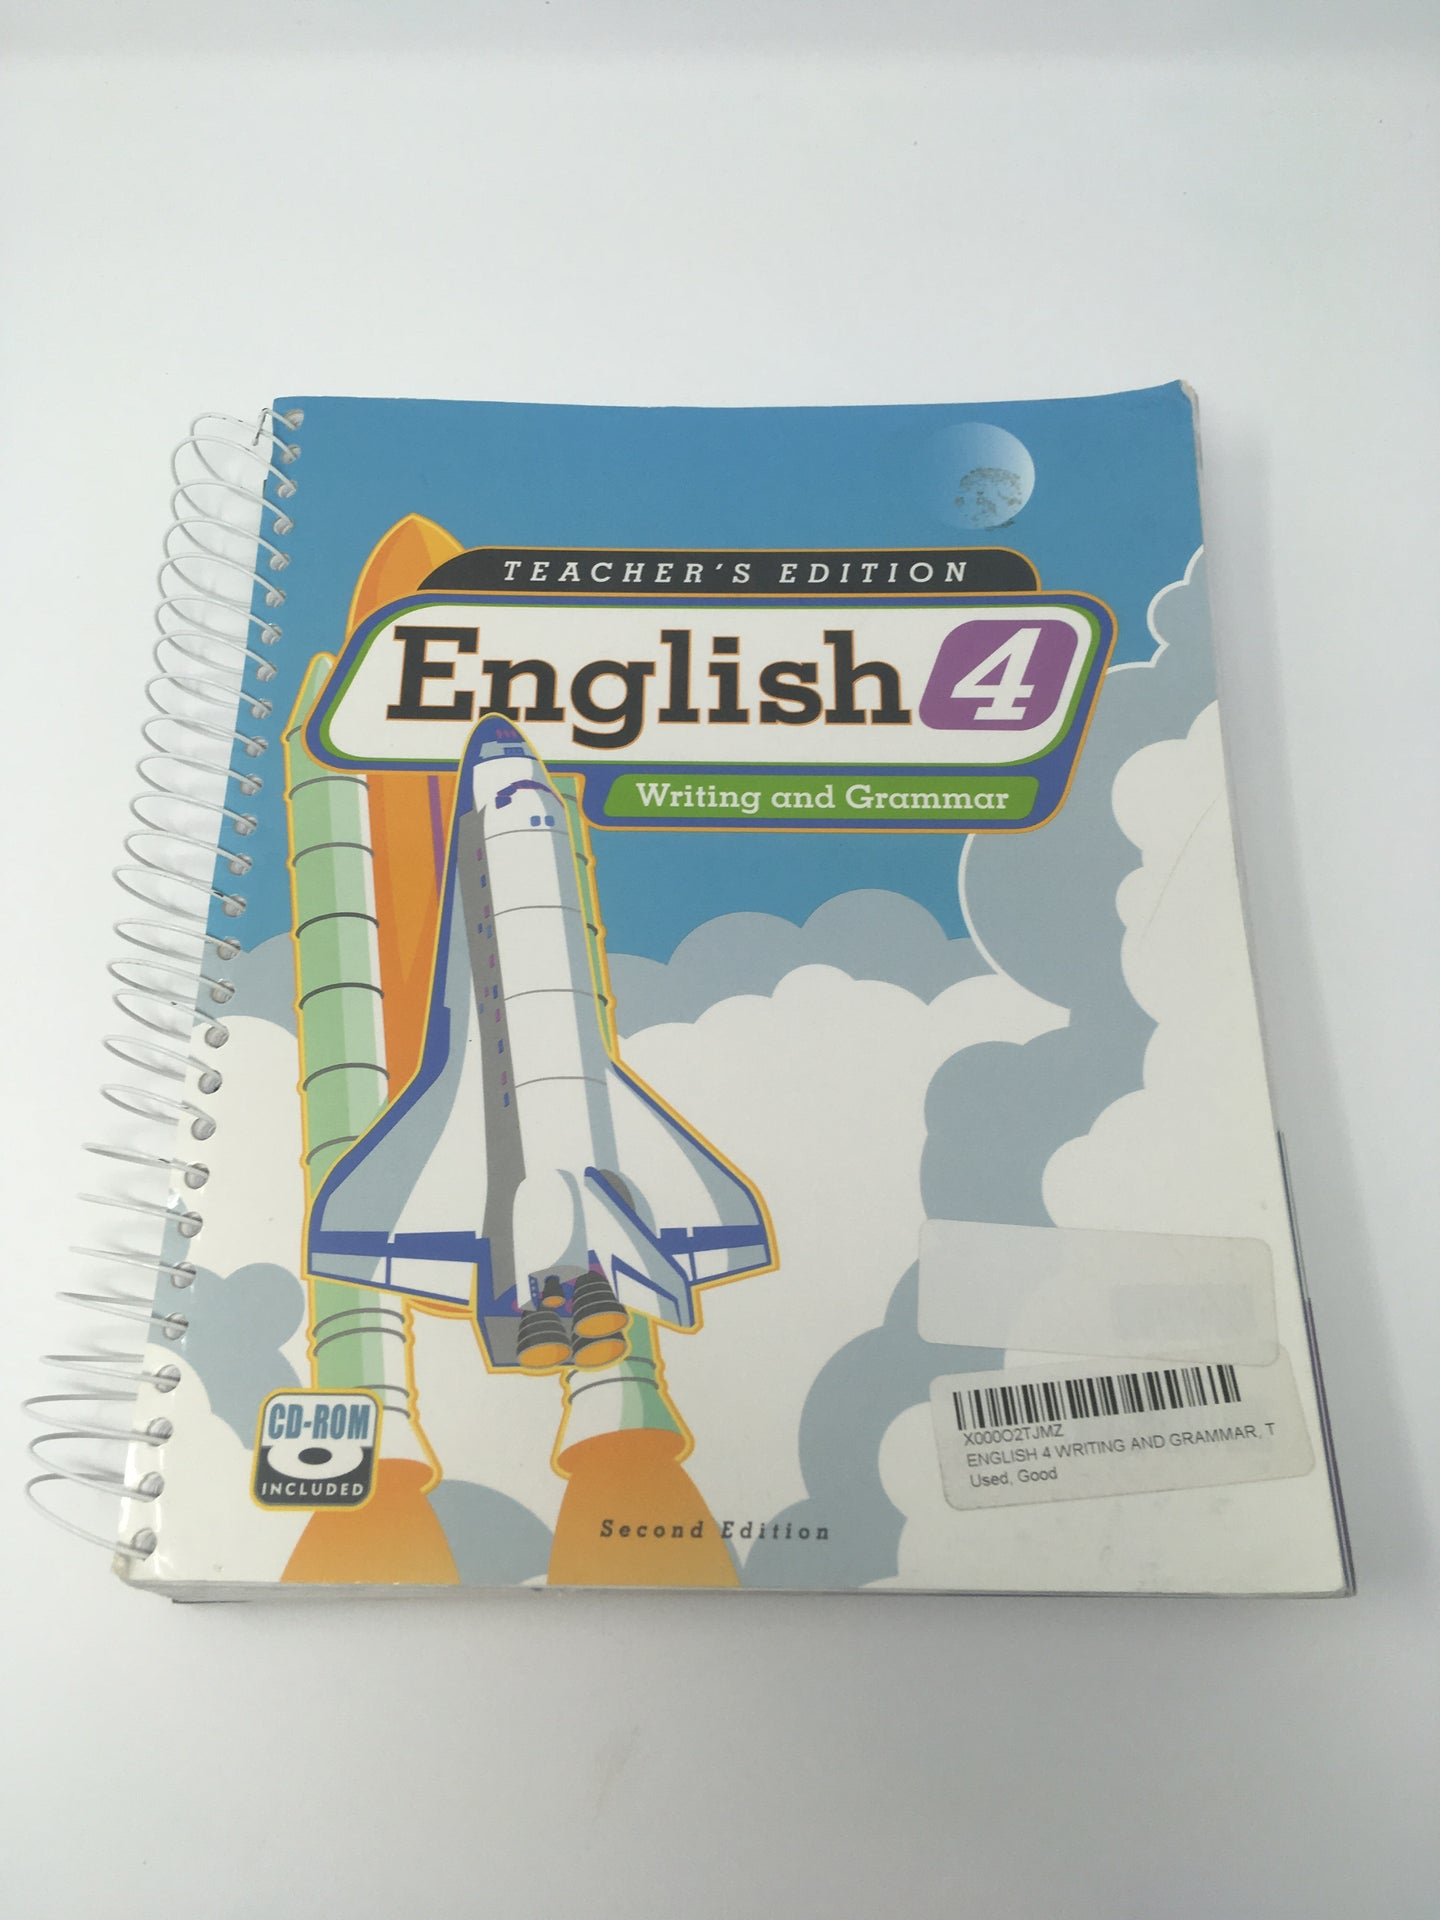 English 4 Teacher's Edition with CD (2nd ed.) - Bob Jones - (Used-Worn/Acceptable) - Little Green Schoolhouse Books